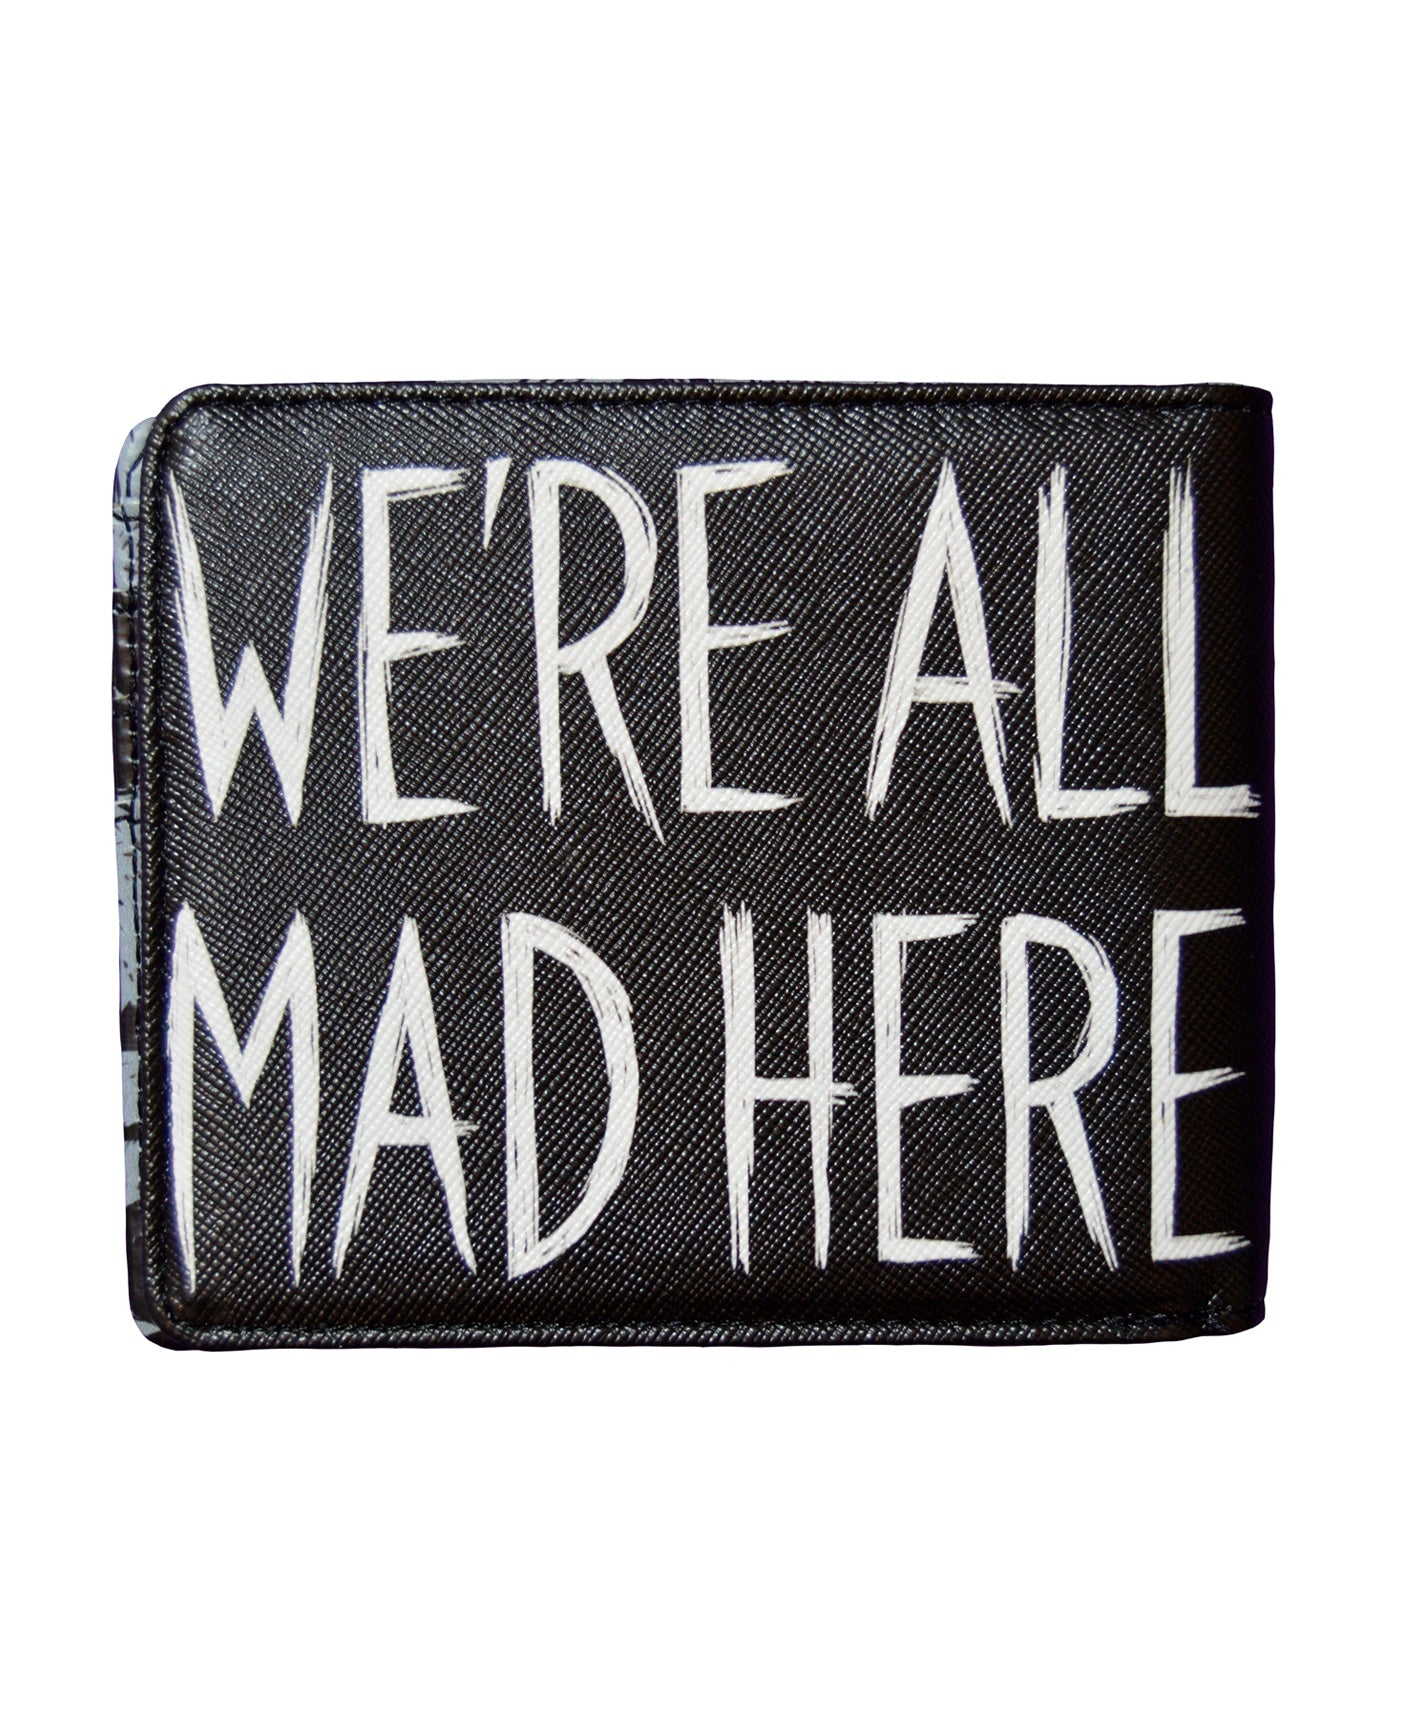 Akumu Ink We're All Mad Here Bi-fold Wallet, Accessories, Akumu ink, goth, emo